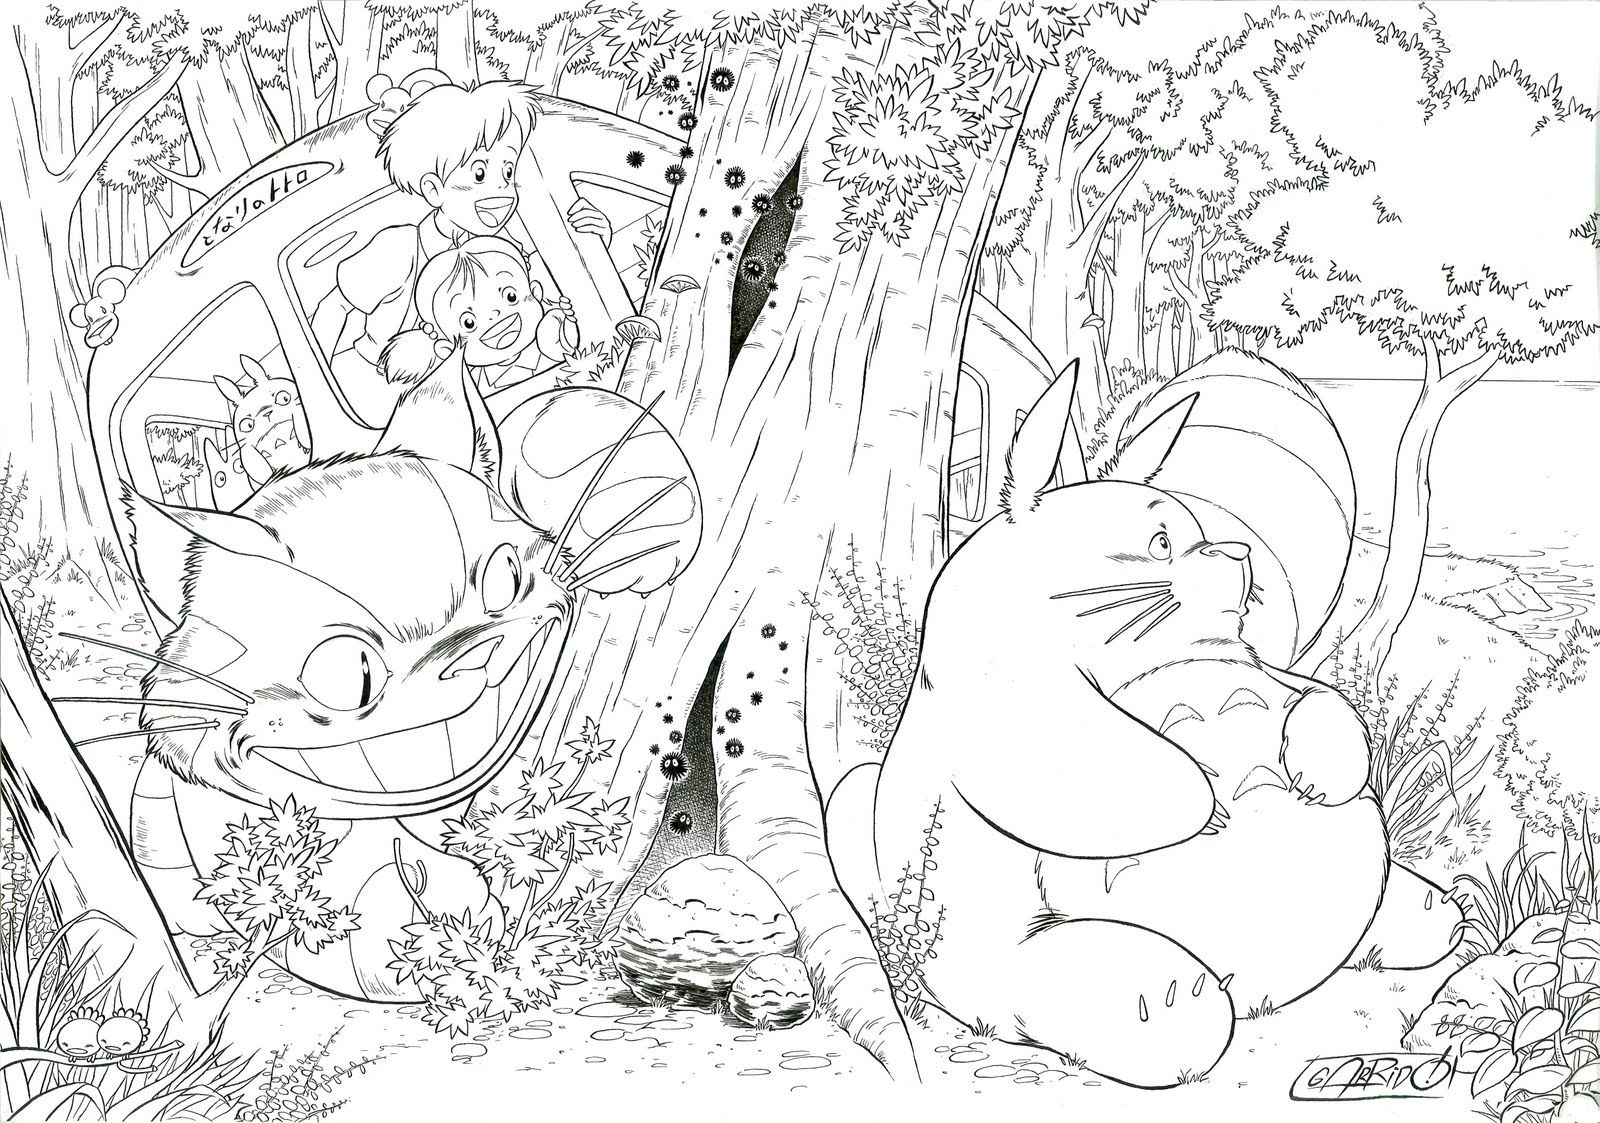 Totoro Coloring Pages (15 Pictures) - Colorine.net | 2456